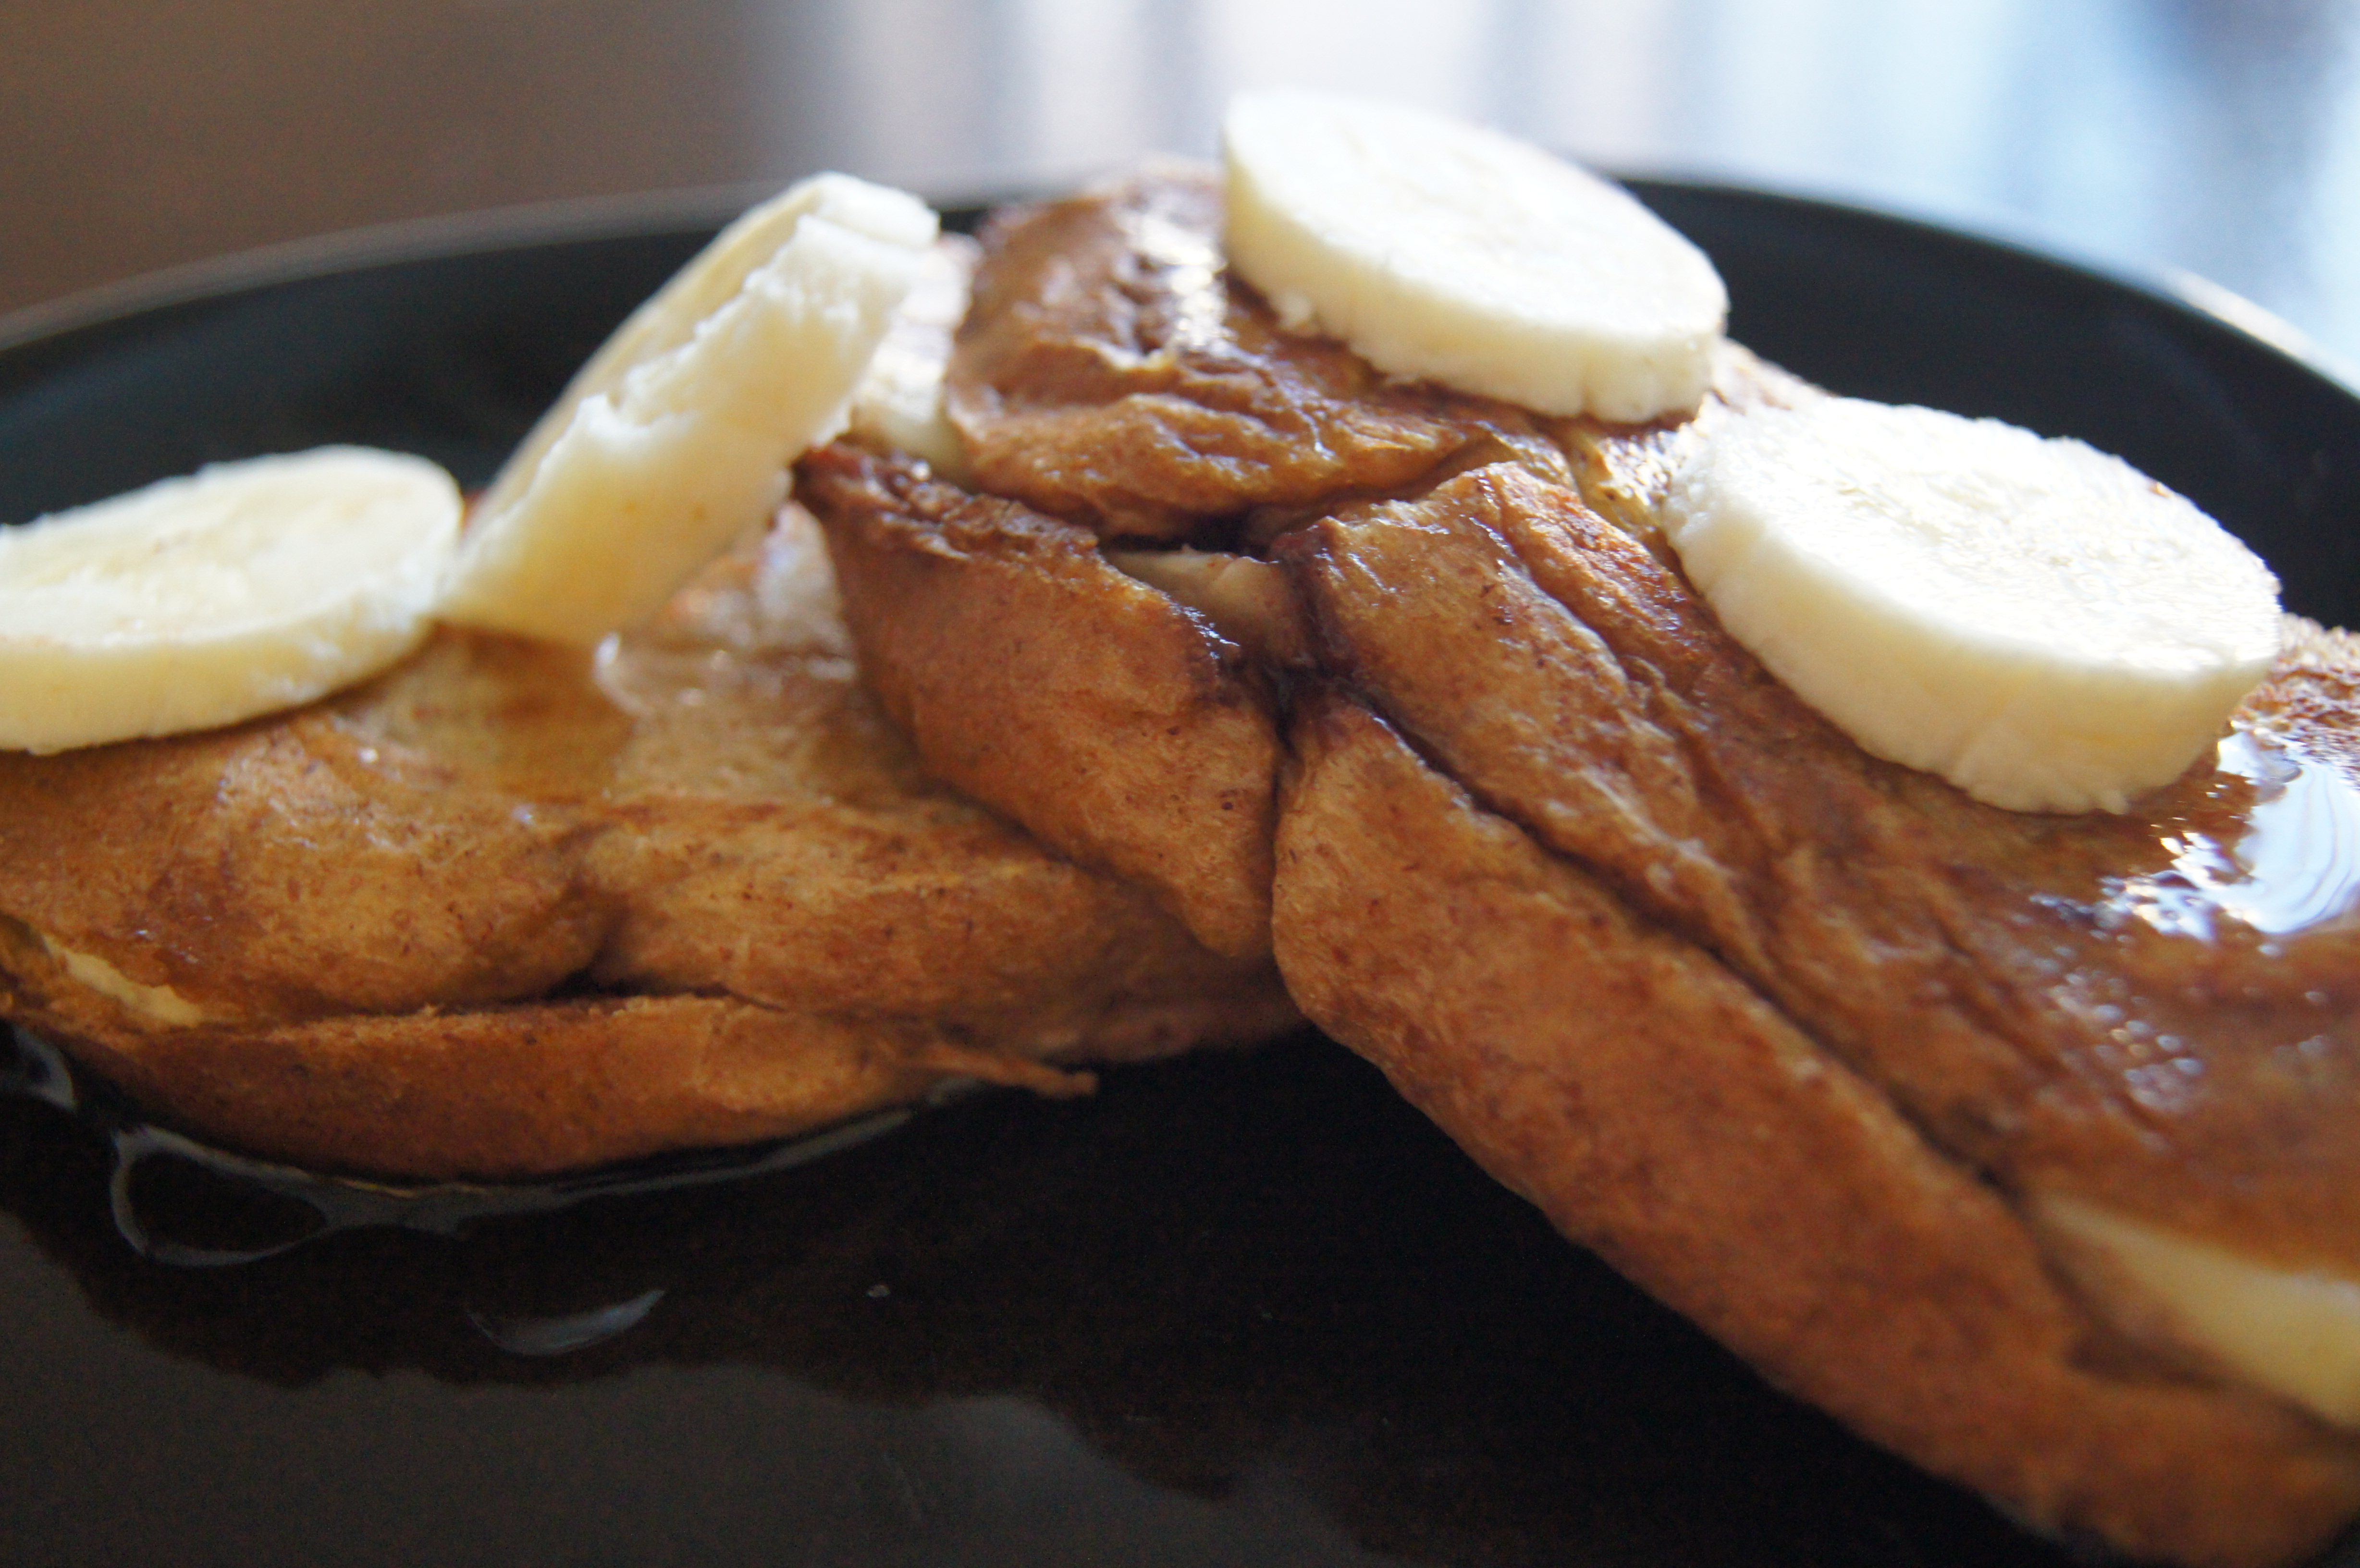 Banana Nutella French Toast | This Workman Life